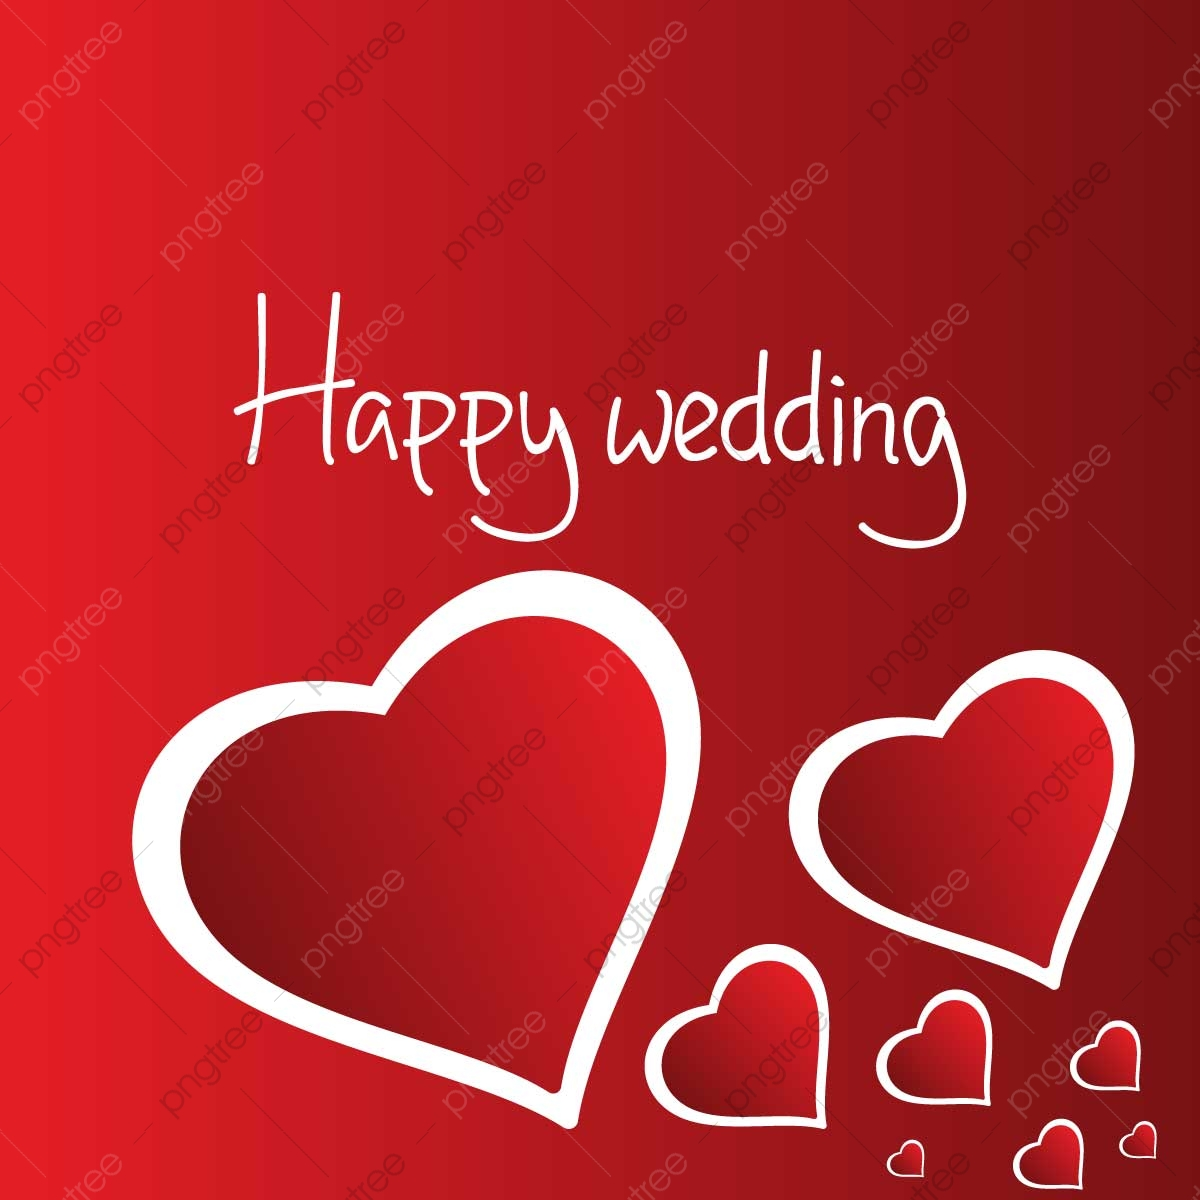 Happy Wedding Design Wedding Icons Happy Icons Happy Png And Vector With Transparent Background For Free Download